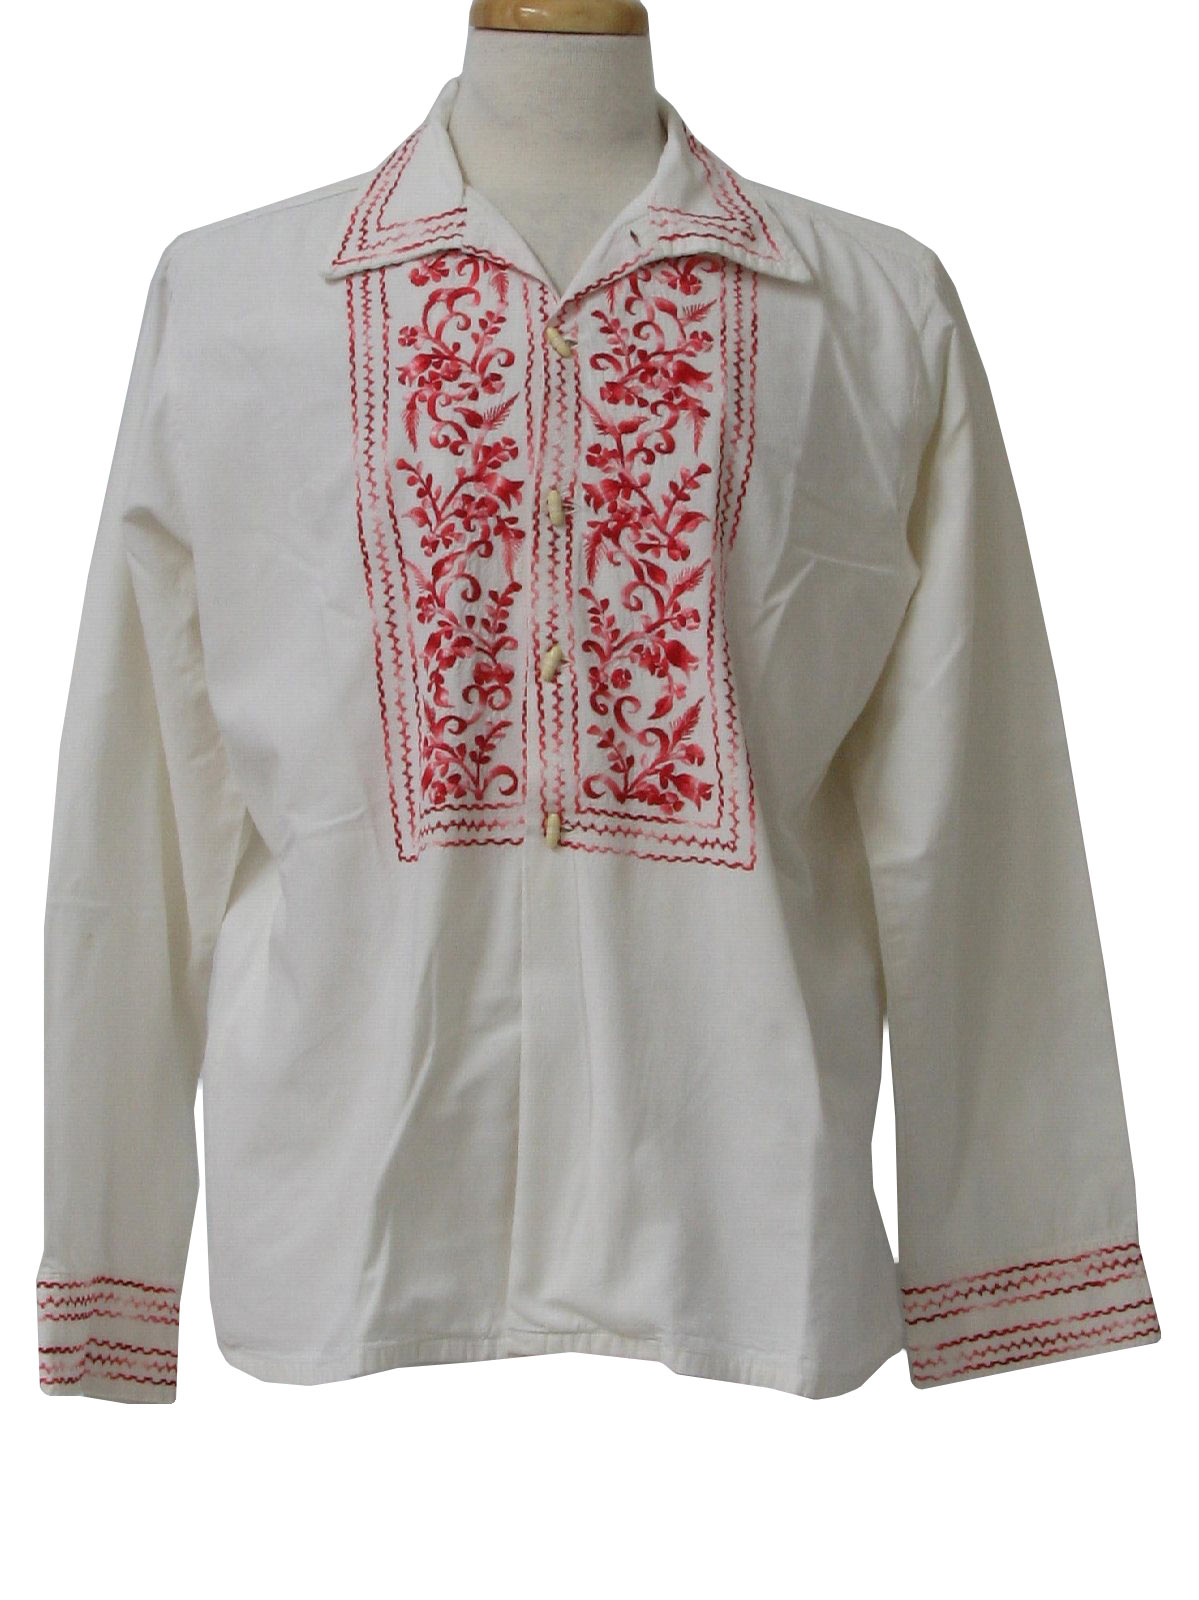 1960's Probably Made in Mexico Mens Embroidered Hippie Shirt $36.00 Not in  stock. Item No. 220170-M50951